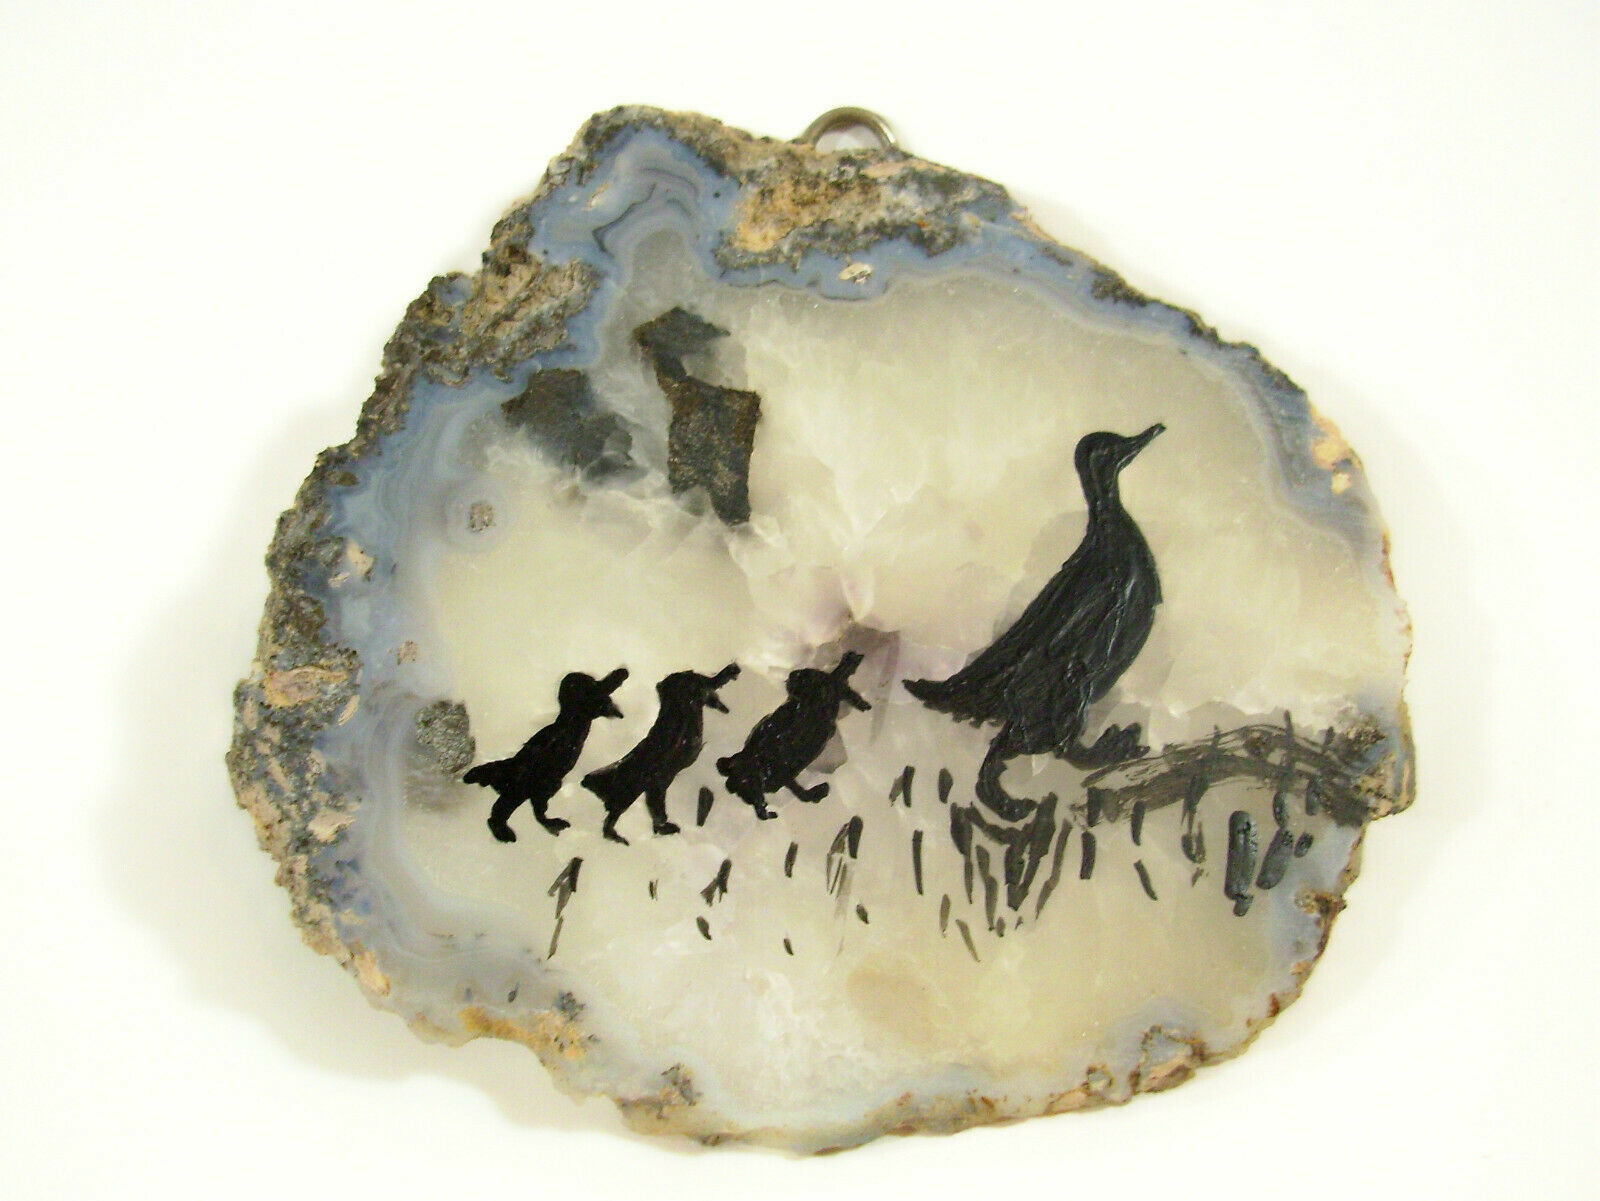 Silhouette Ducks Hand Painted on Geode Stone Slice Folk Art Wall Hanging Plaque